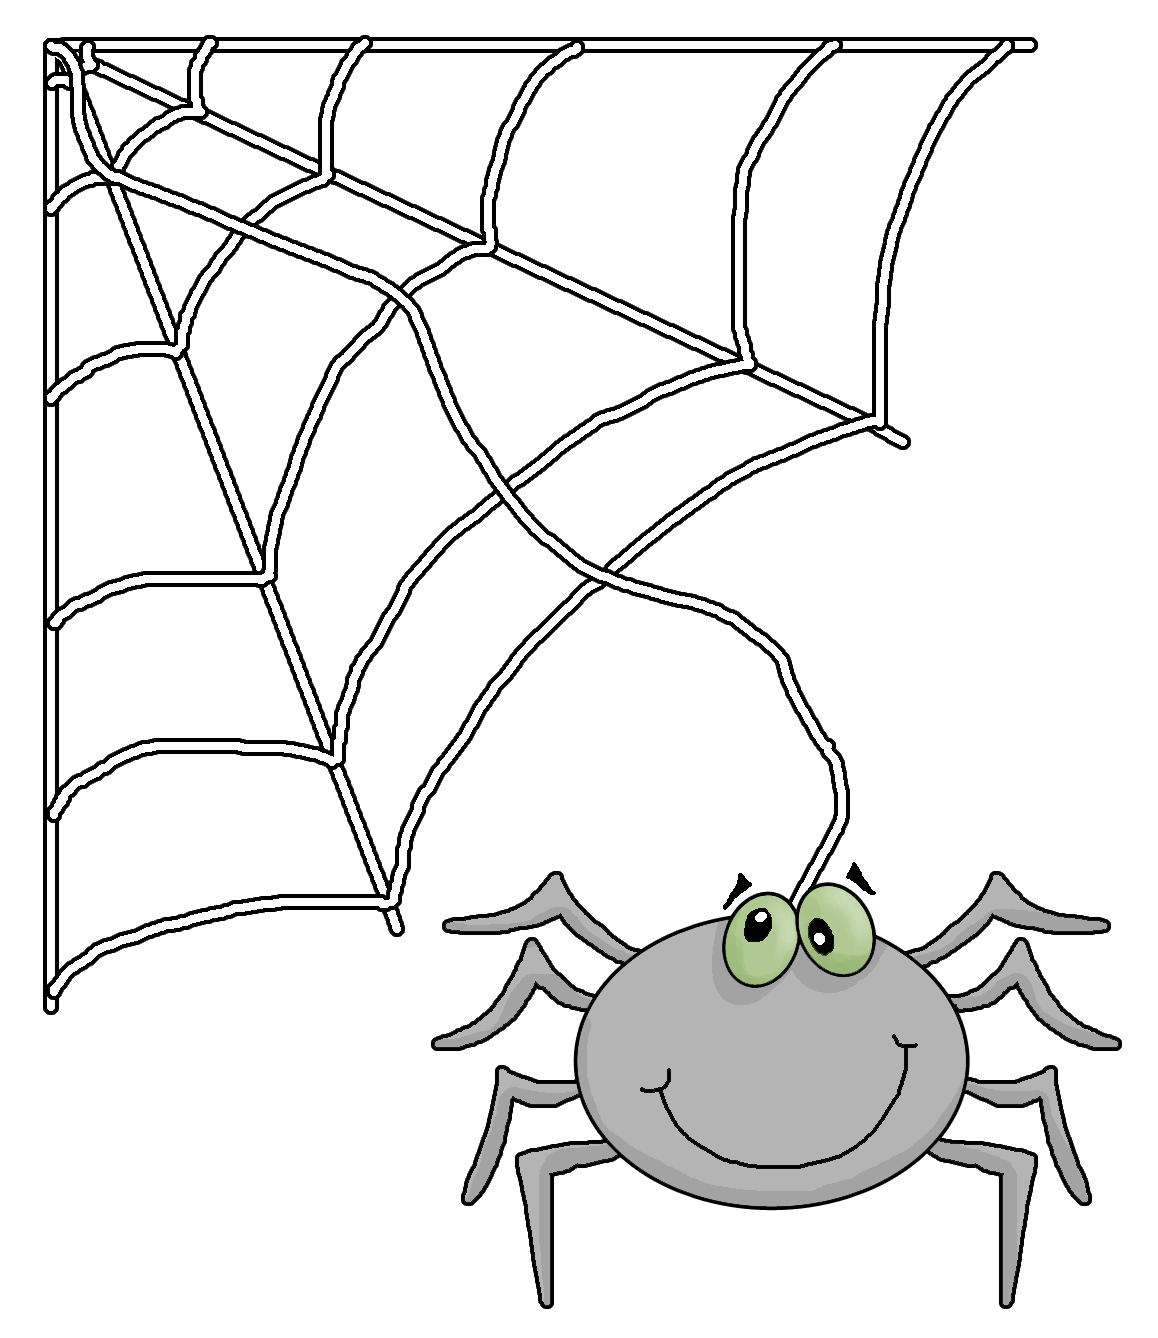 Sailing Through 1st Grade: The Itsy Bitsy Spider